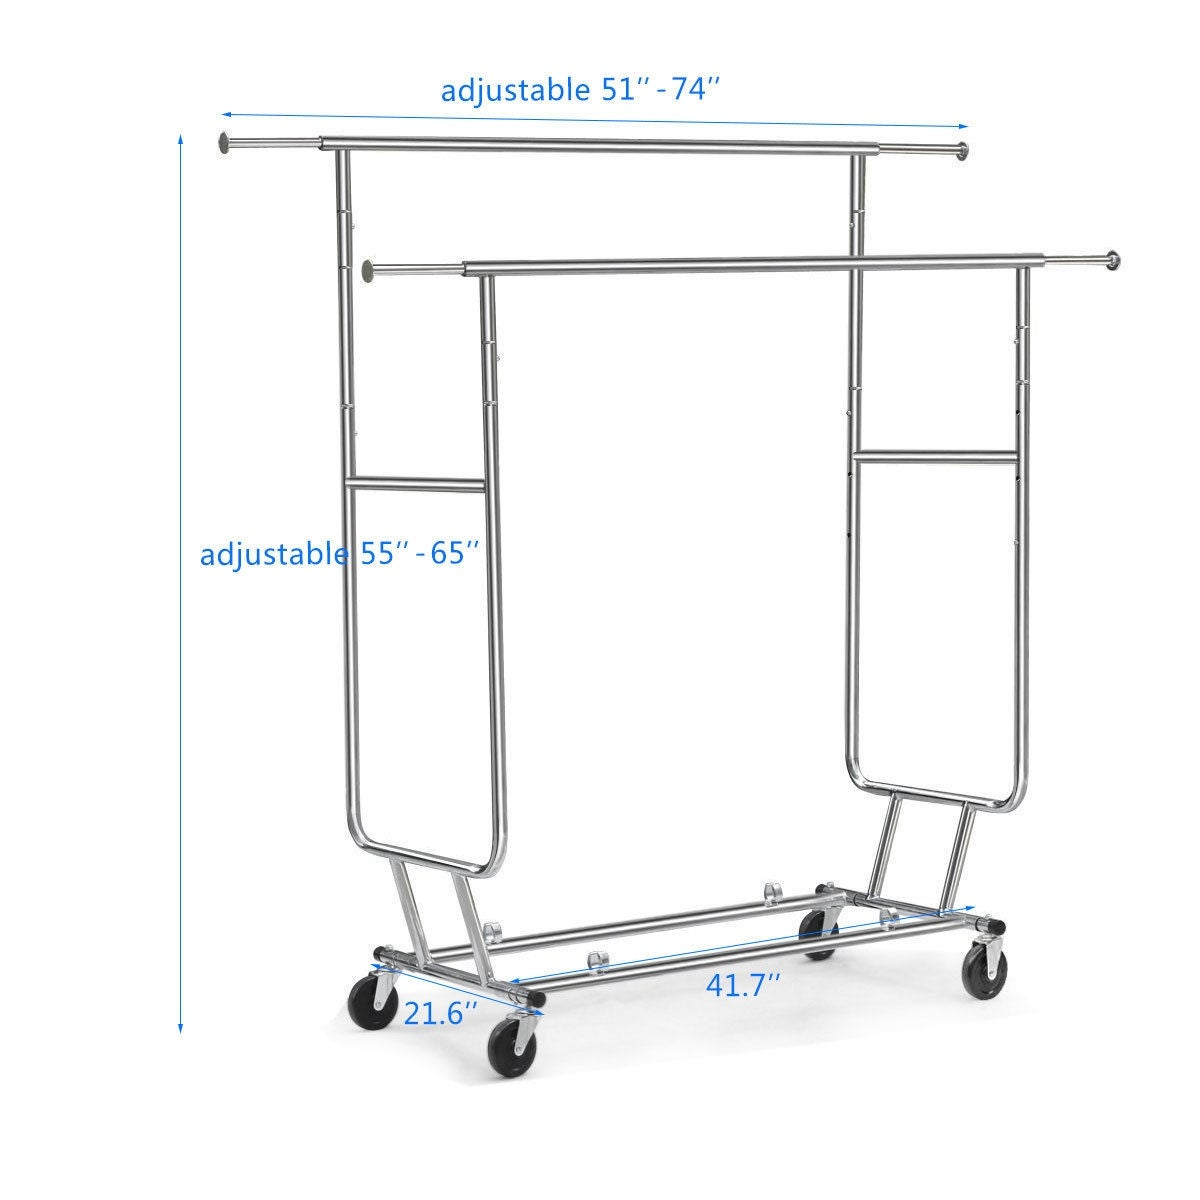 Shop costway commercial grade collapsible clothing rolling double garment rack hanger holder silver free shipping today overstock com 17950503